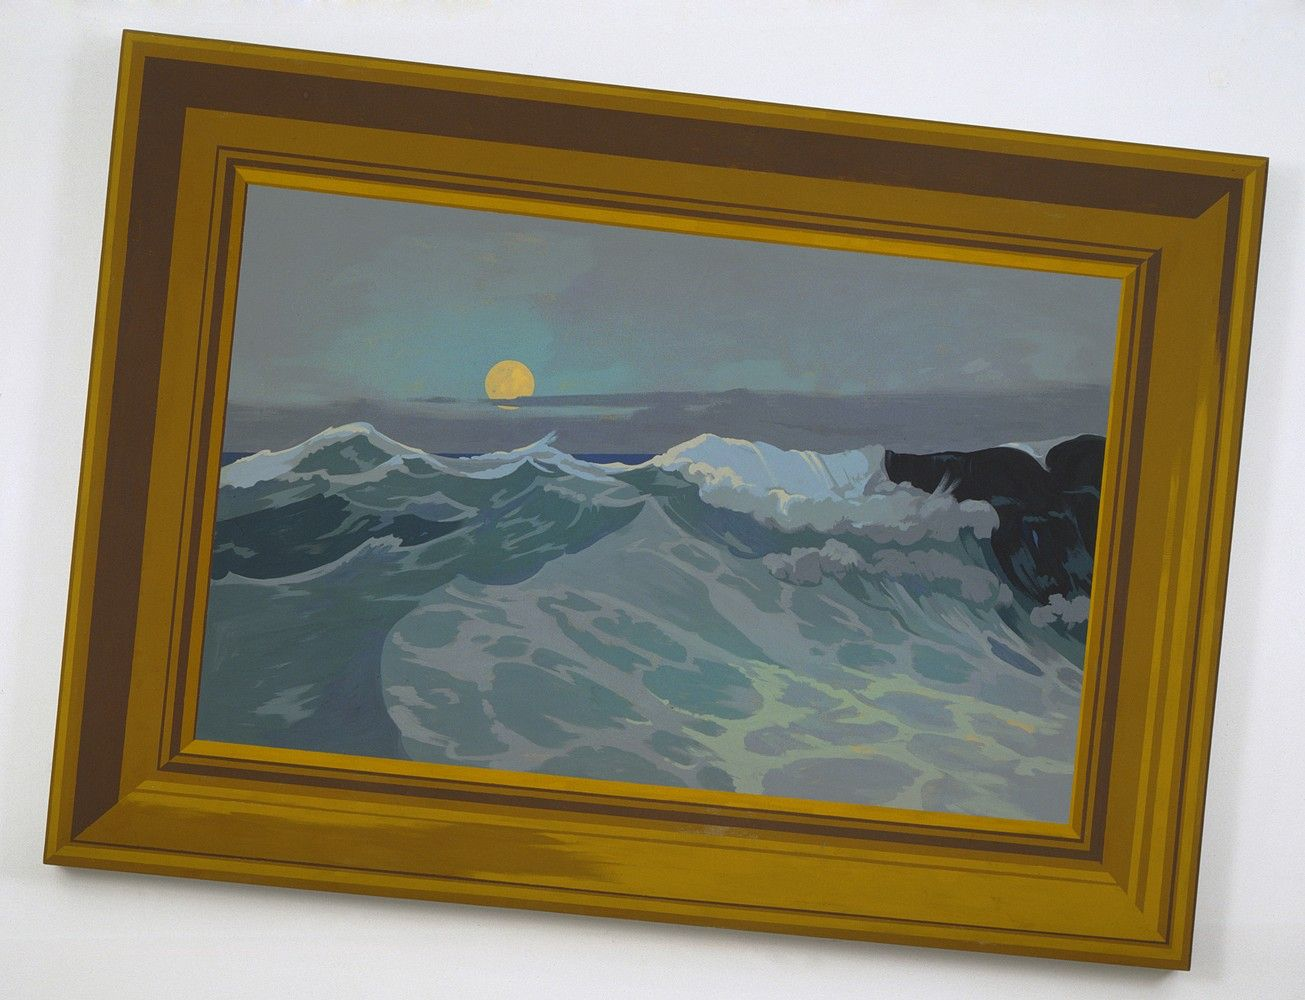 Matthew Benedict, Moon and Tides (The Eternal Subject), 2002, from